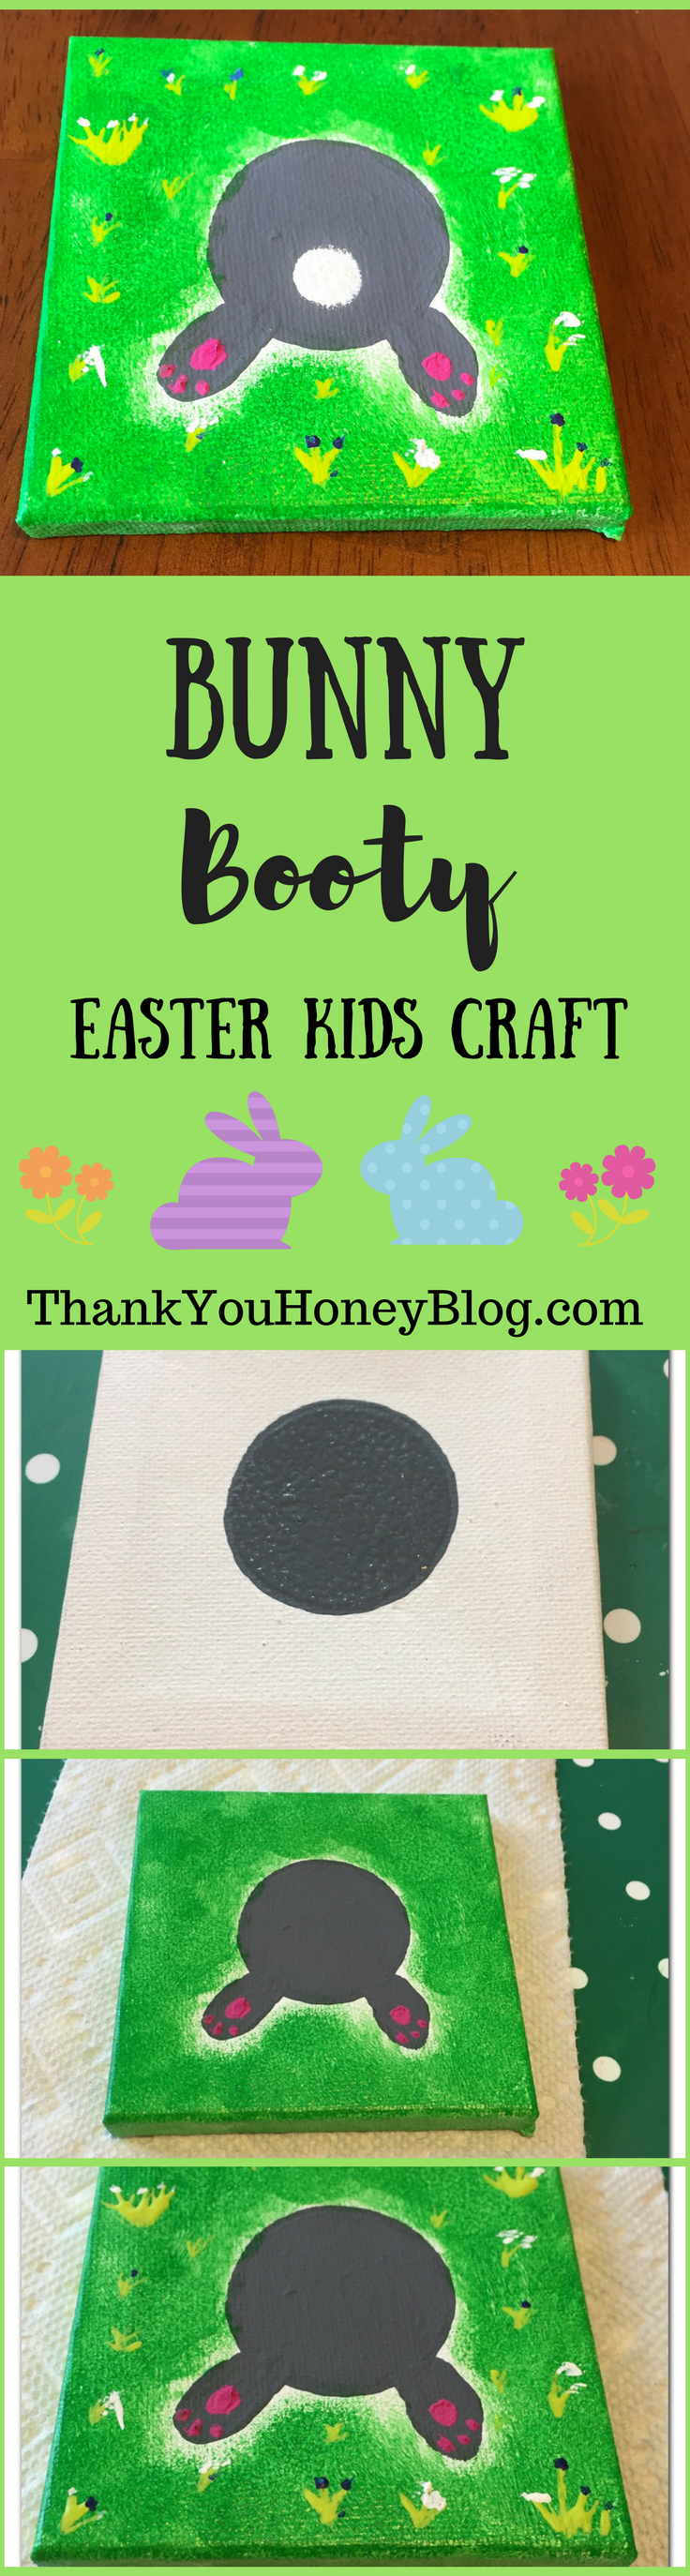 Bunny Booty Easter Kids Craft